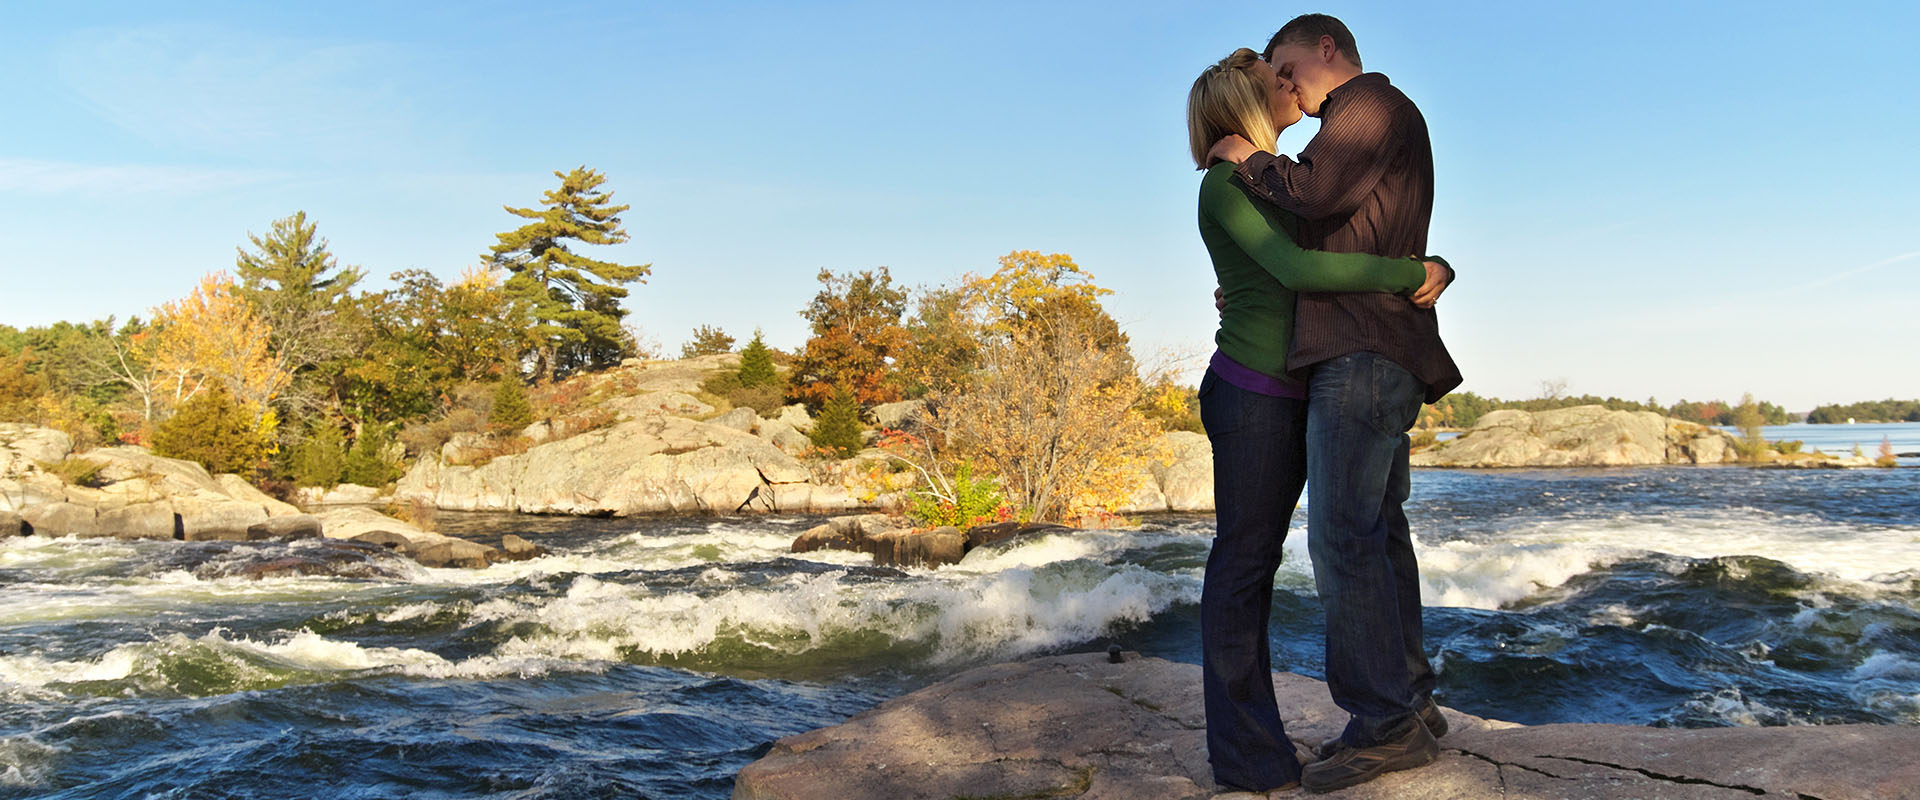 Engagement Session at Burleigh Falls, near Peterobourh in the Kawartha Lakes